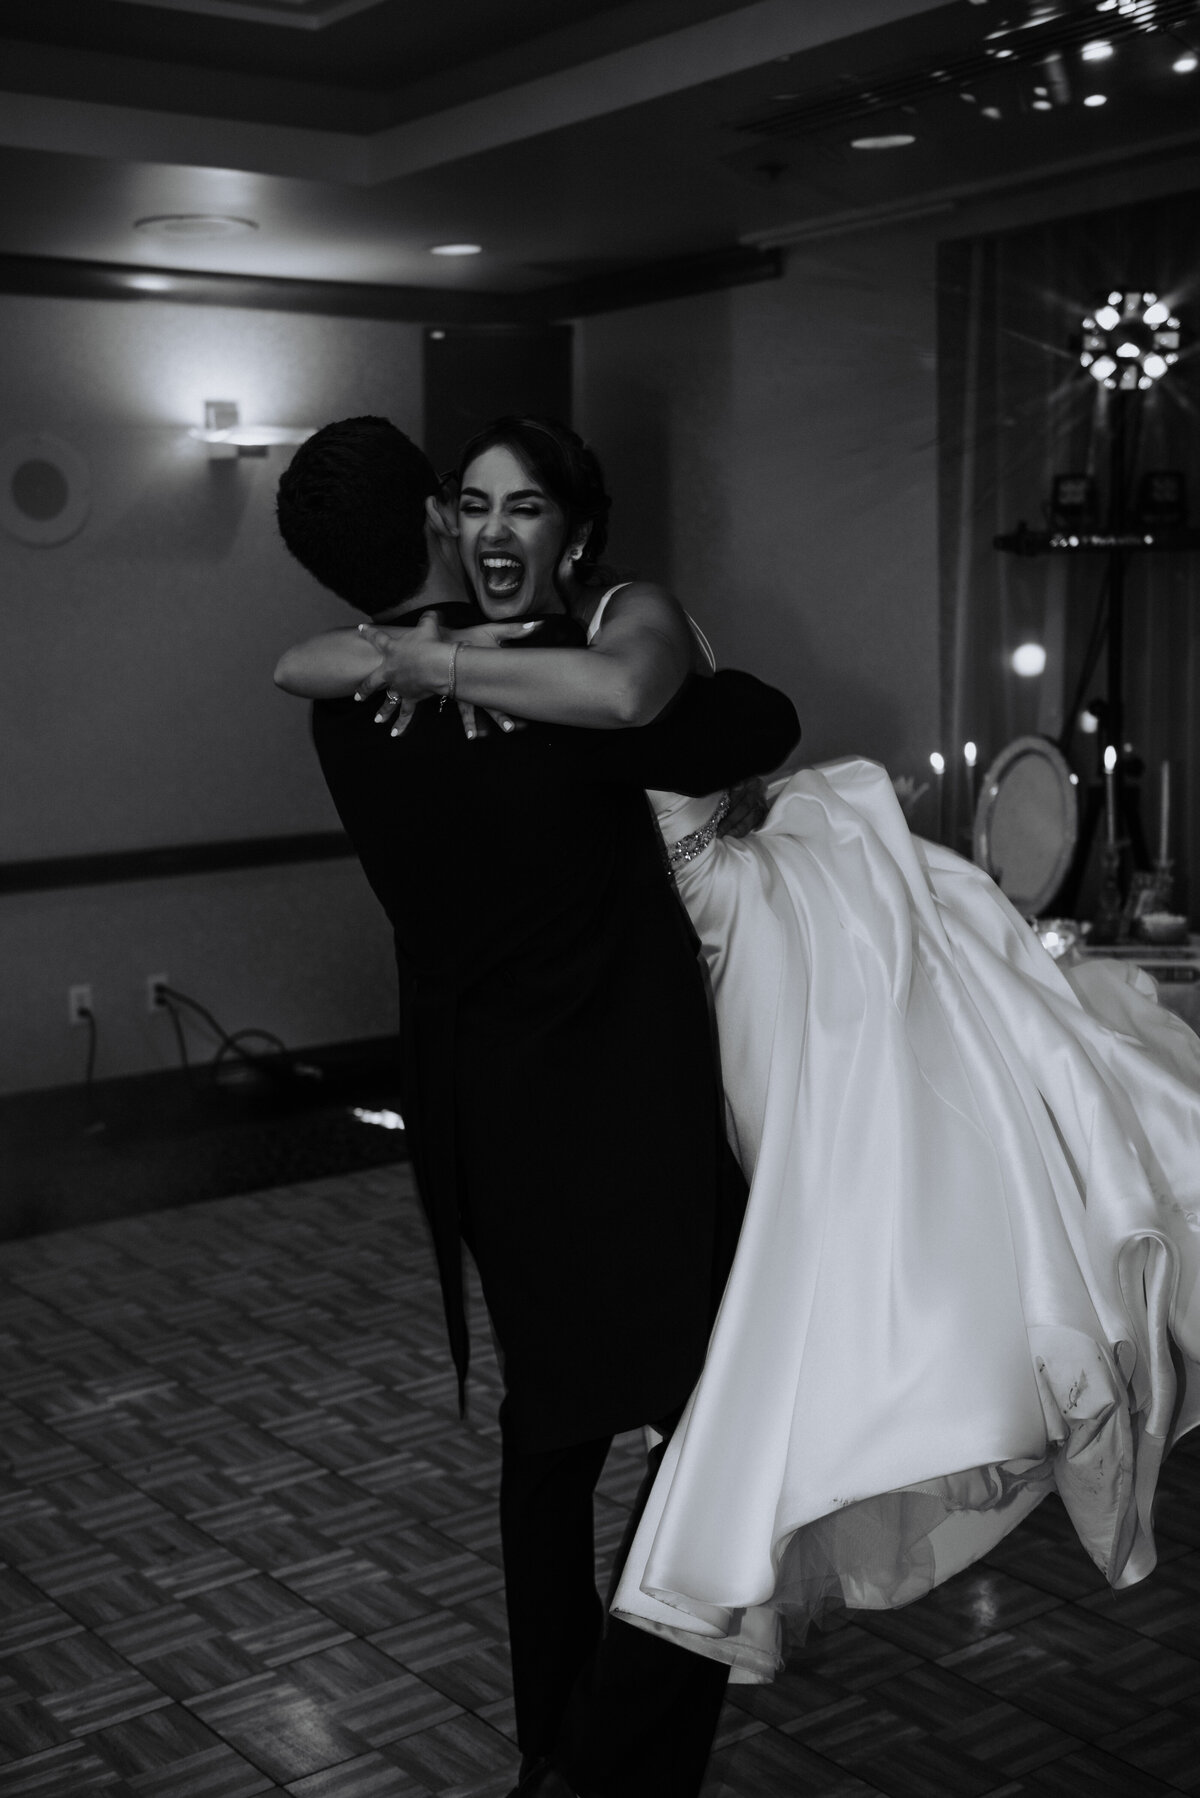 Couple's first dance, spinning around, black and white